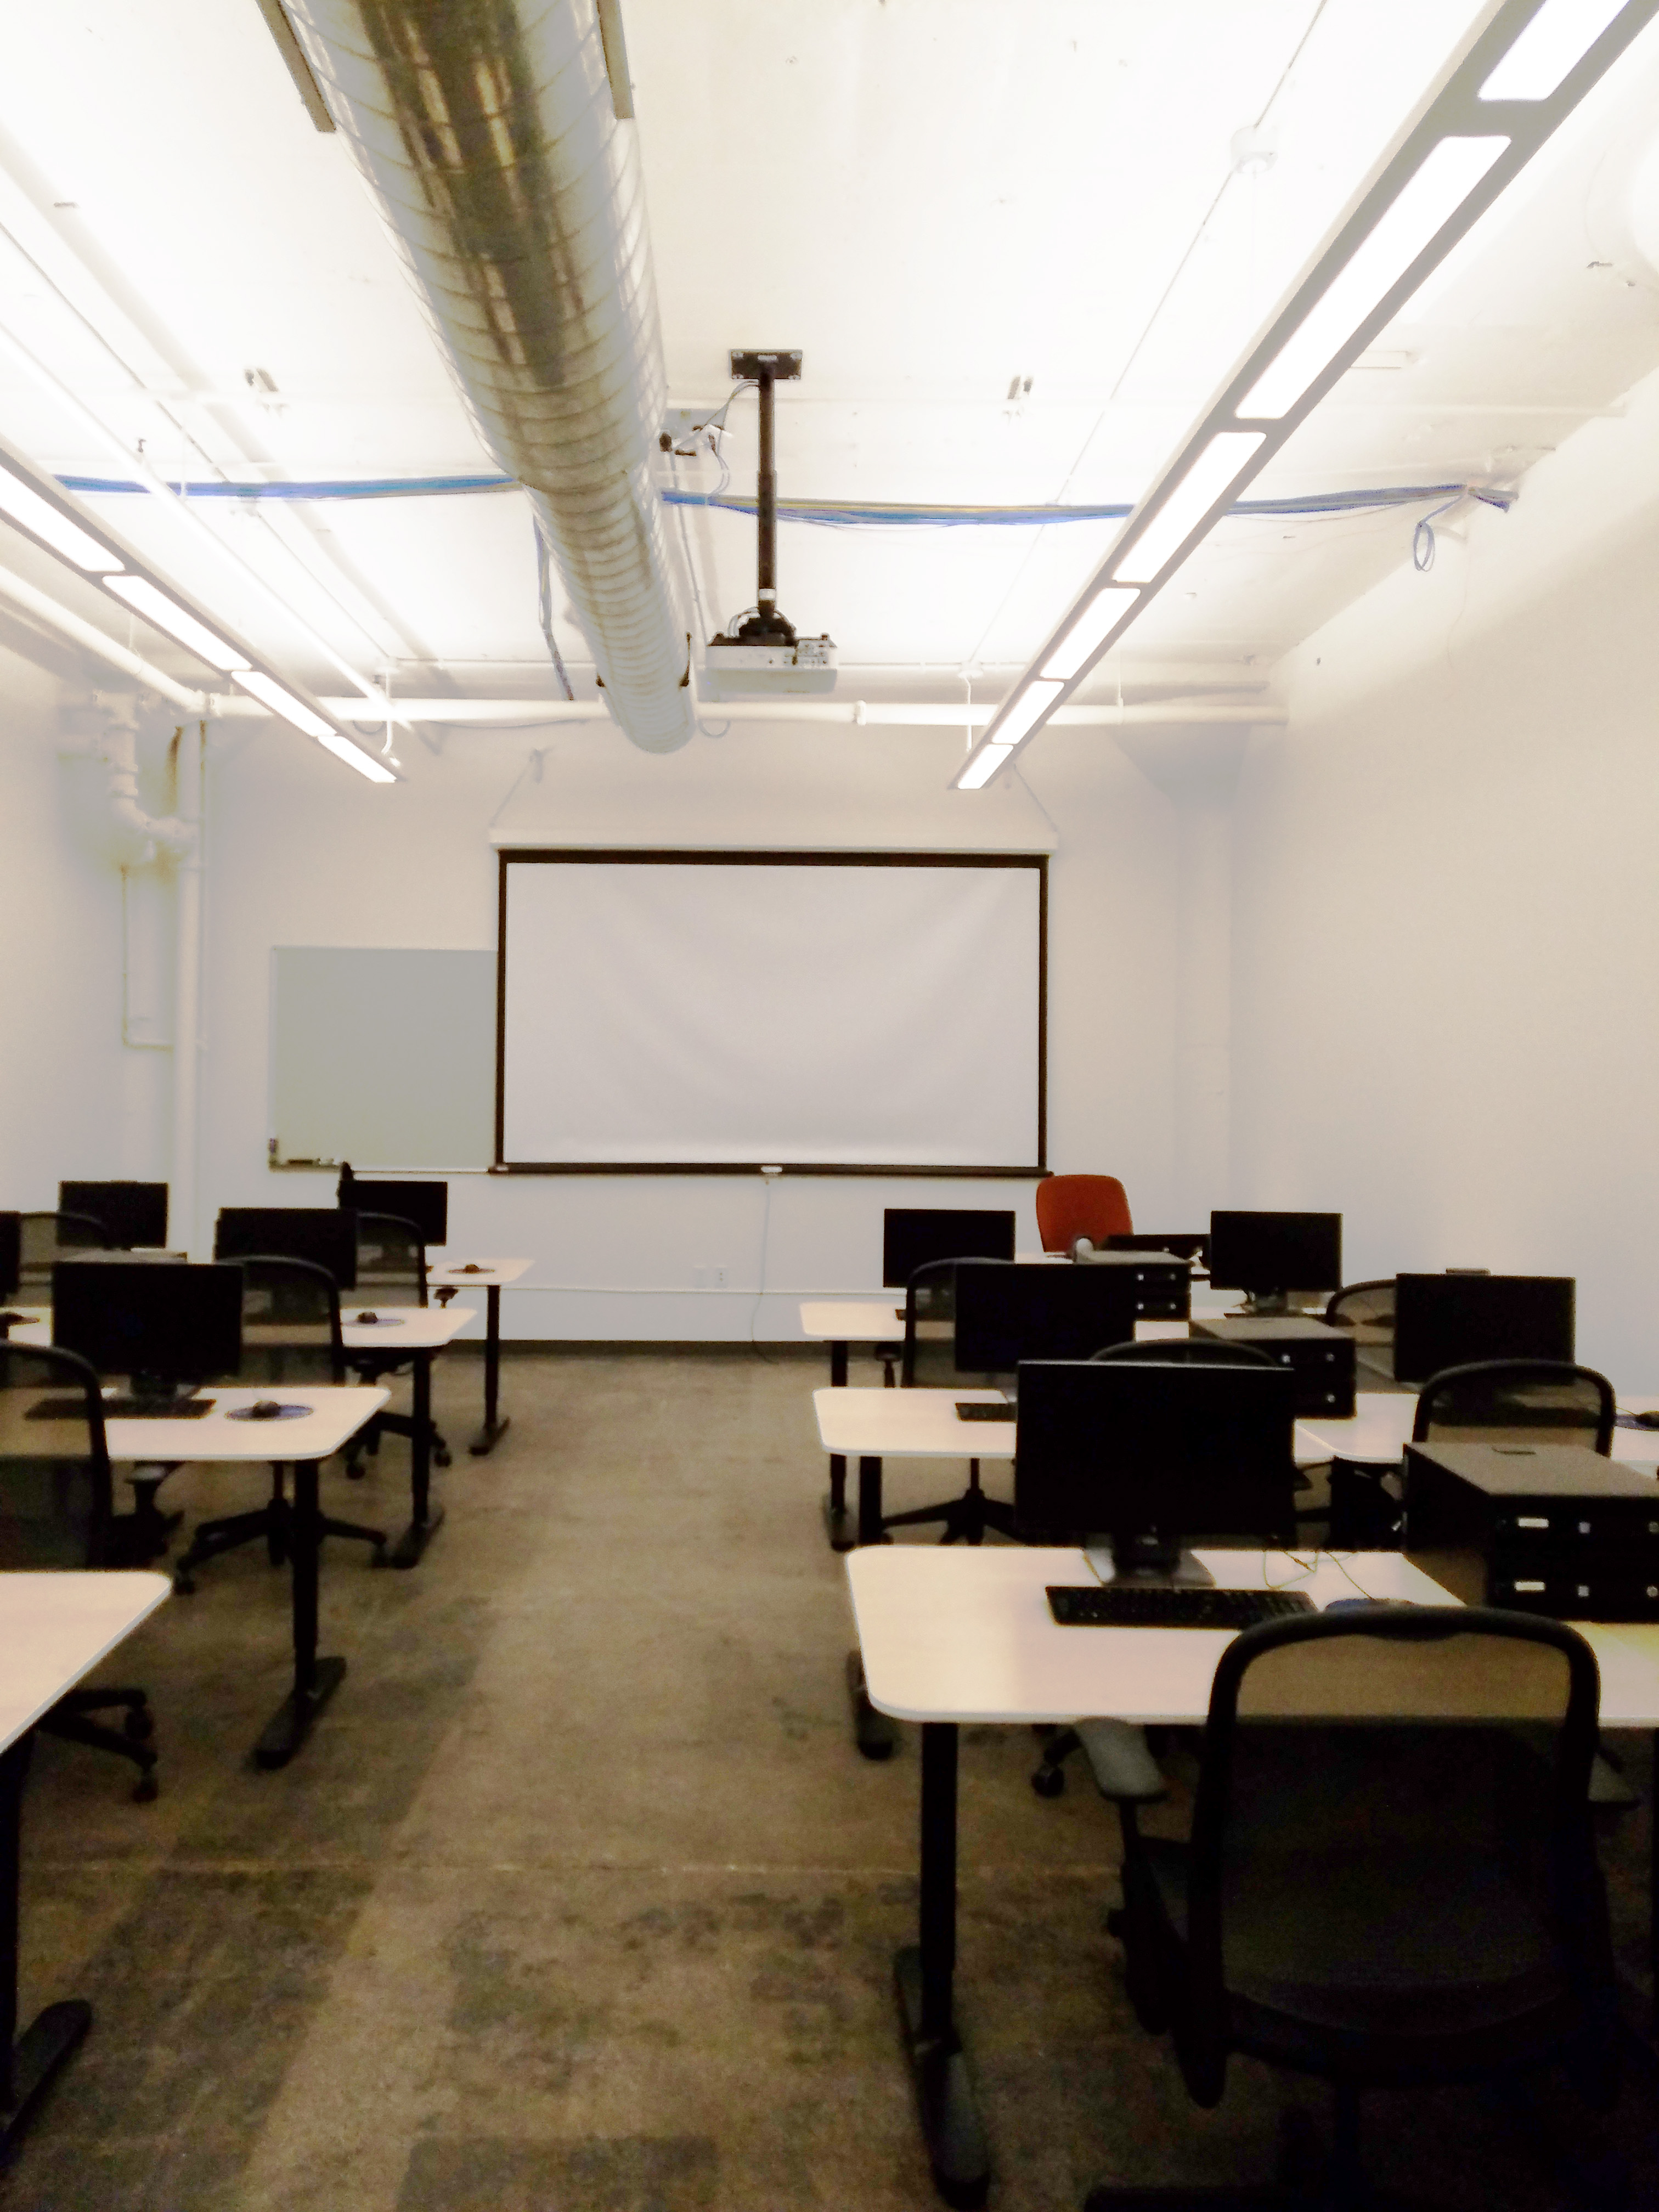 Classroom Space